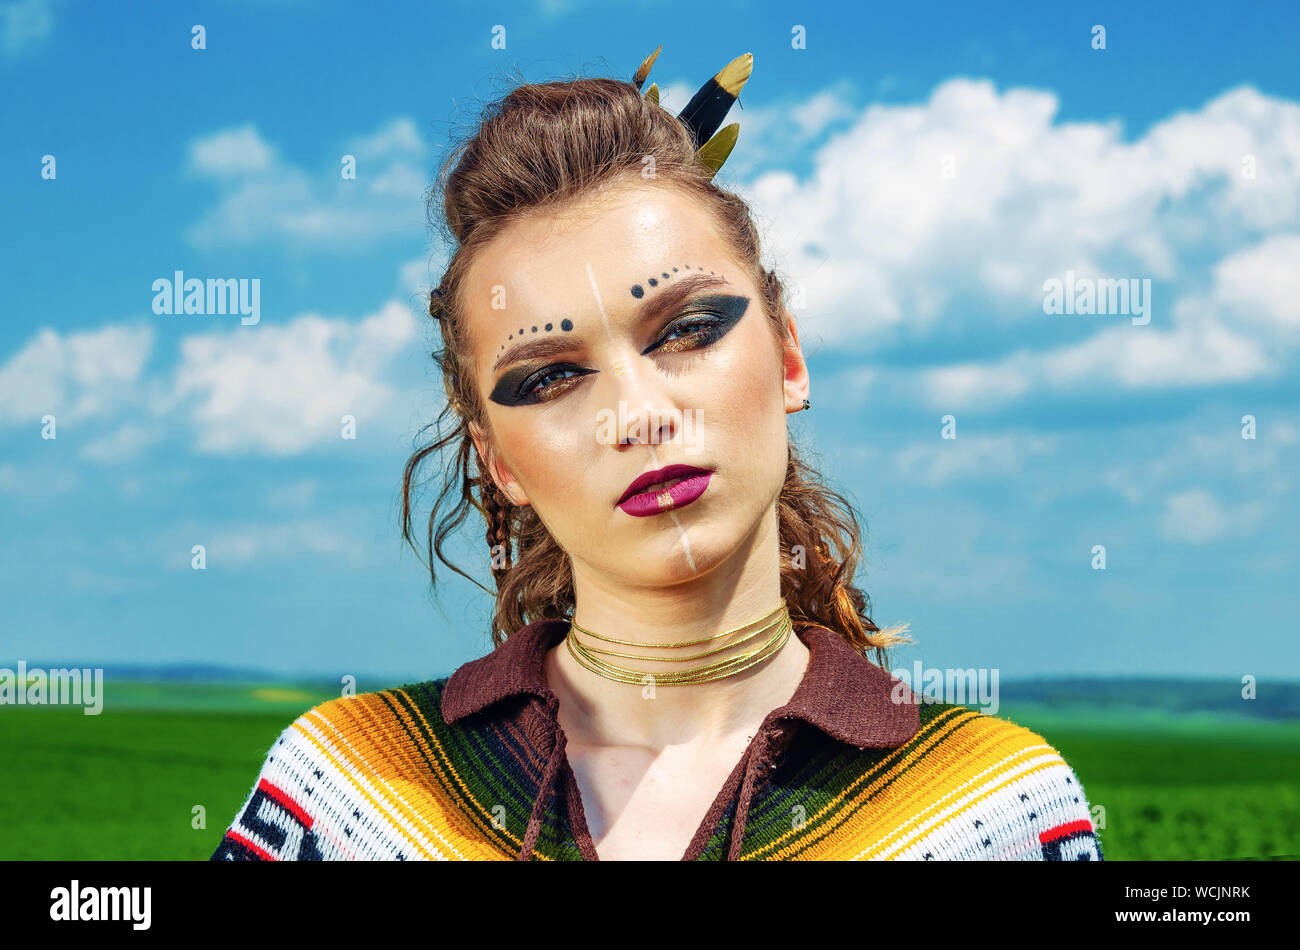 Portrait Of A Girl With Makeup Amazon Viking Aggressive War Paint Dressed In A Poncho On The Background Sky Stock Photo Alamy